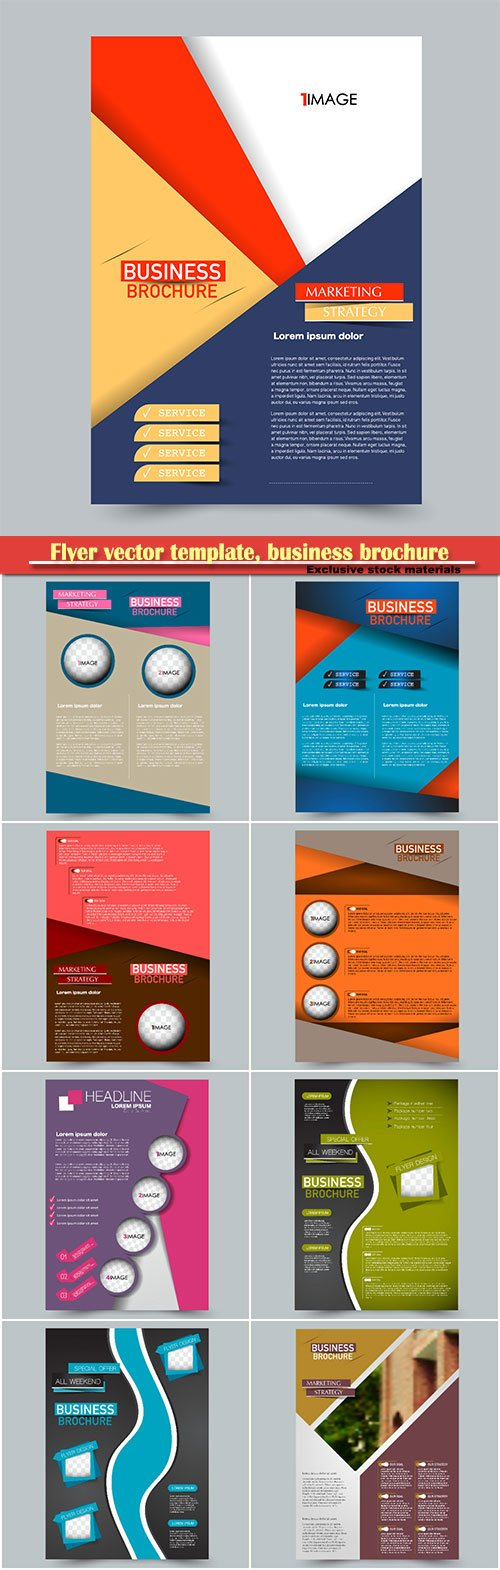 Flyer vector template, business brochure, magazine cover # 36